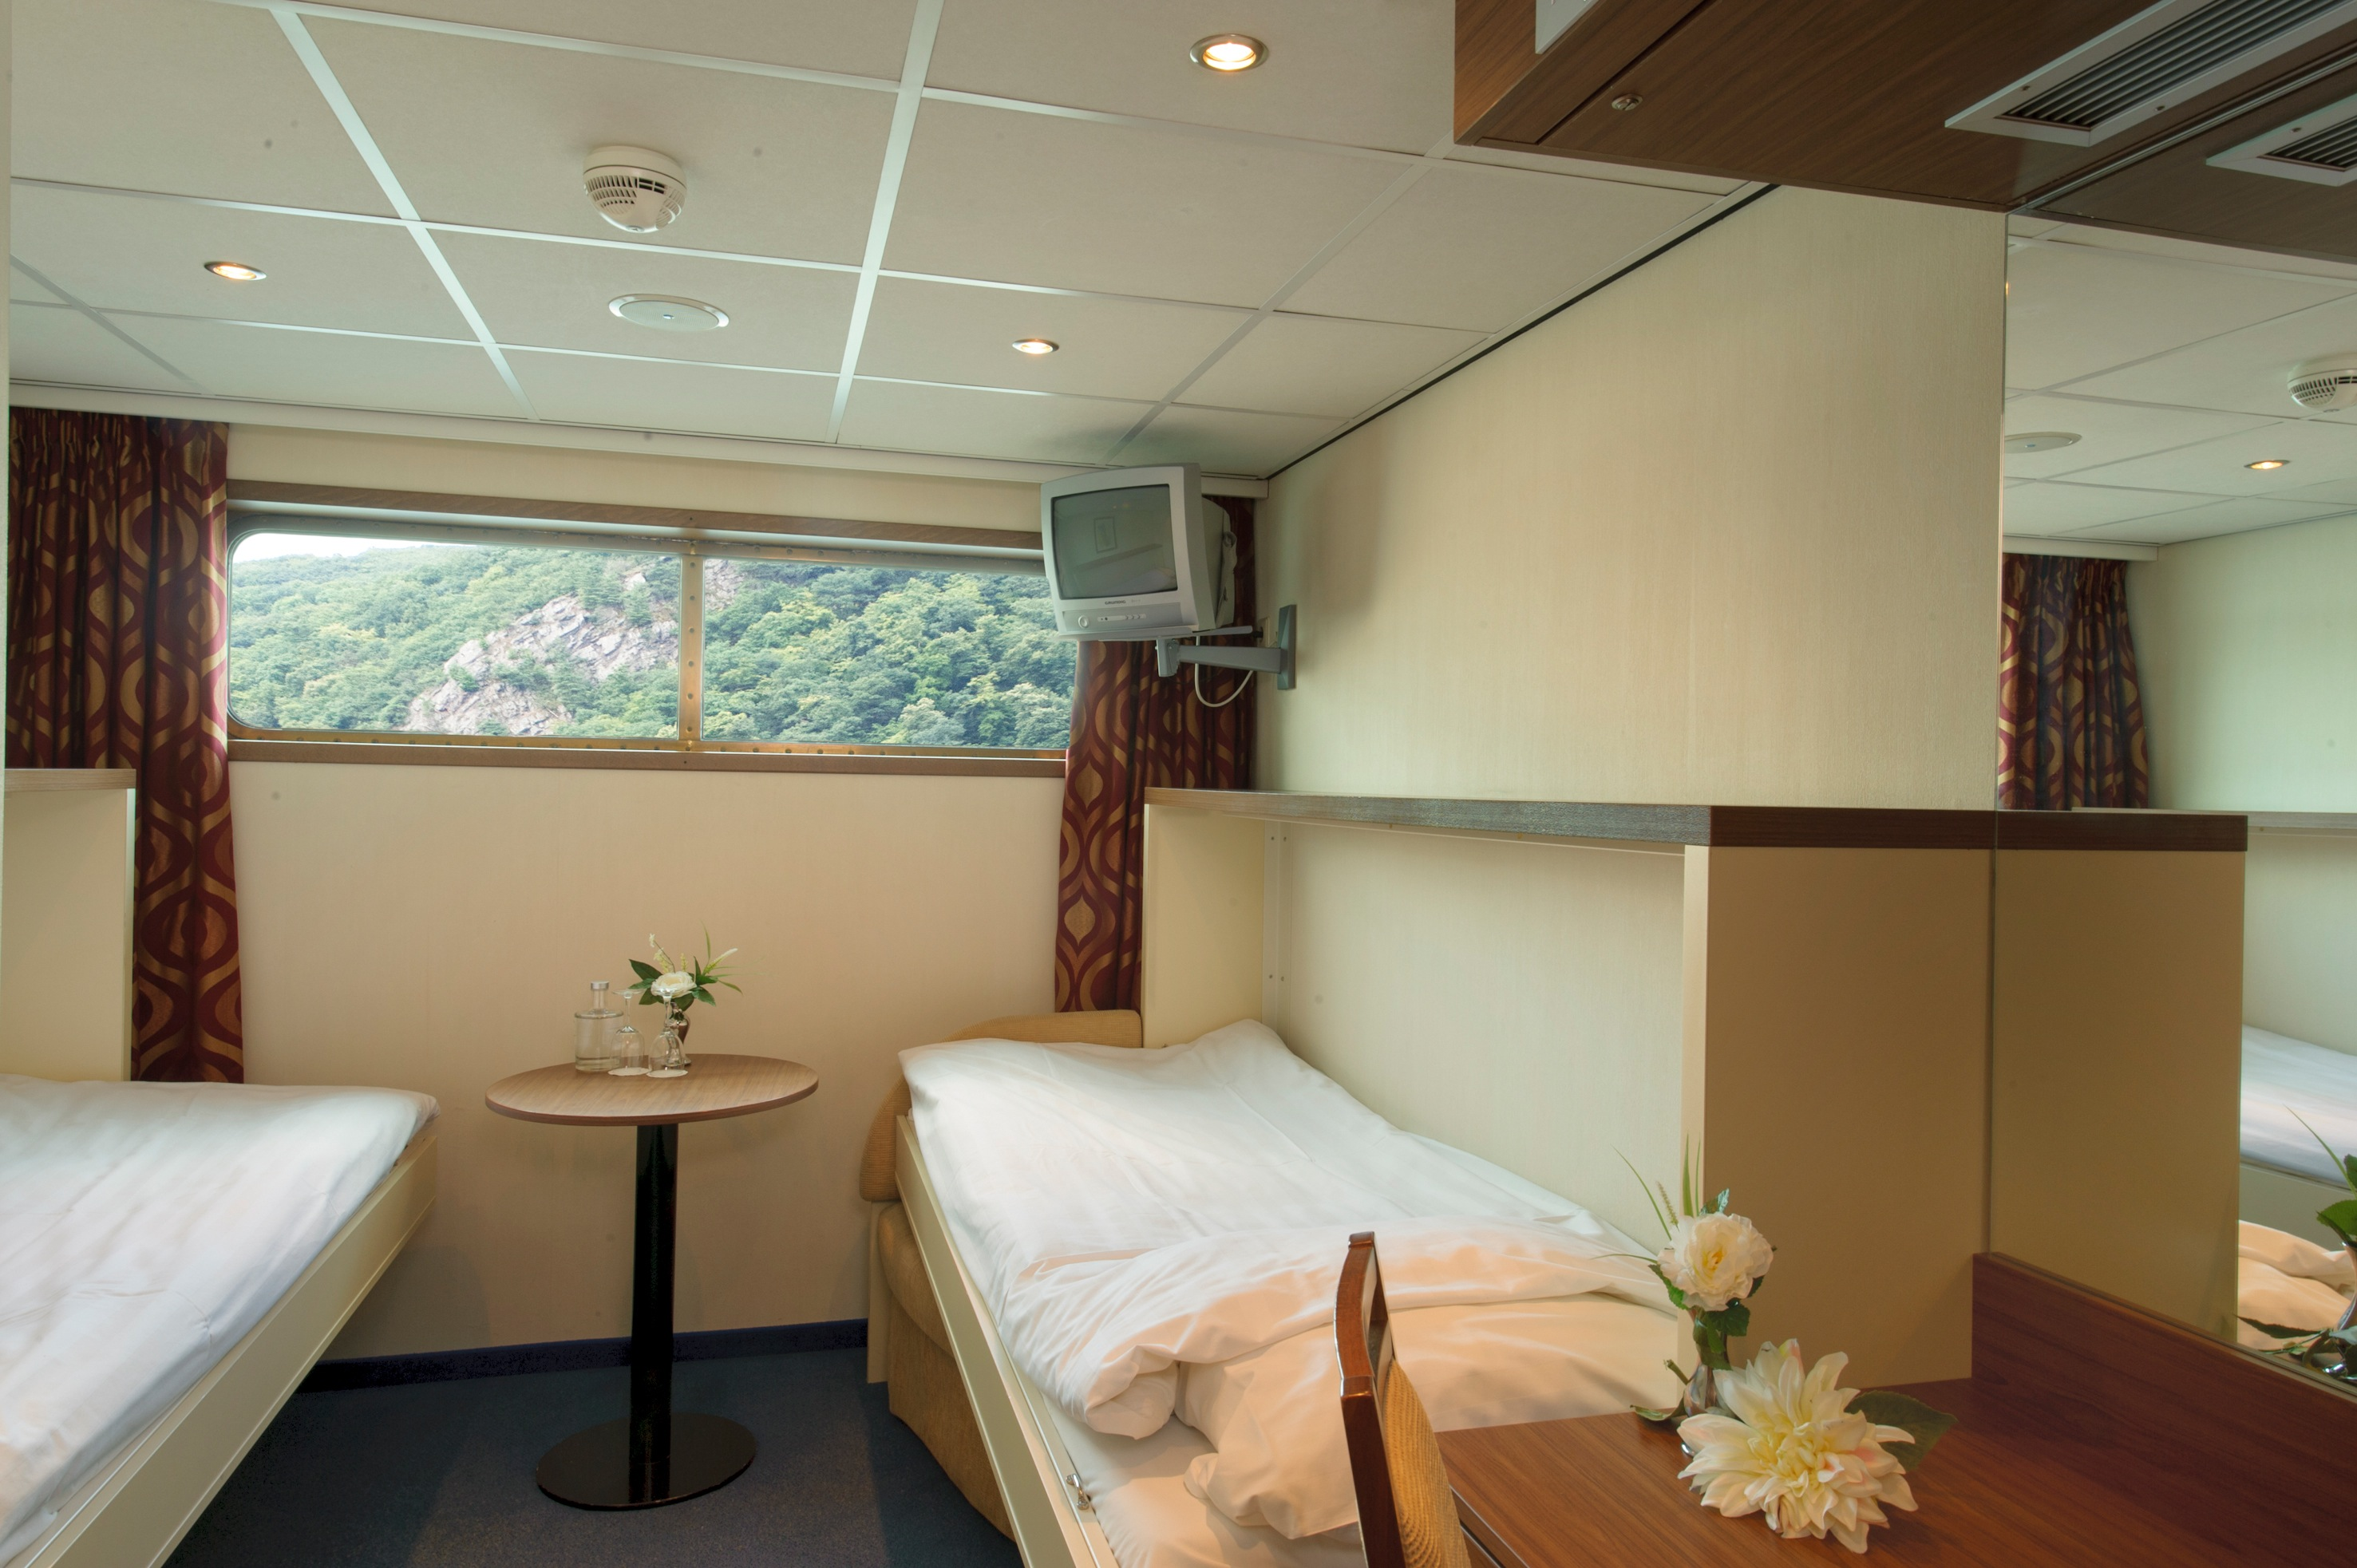 The River Cruise Line MS Serenity Accommodation Main Deck Cabin 2.jpg